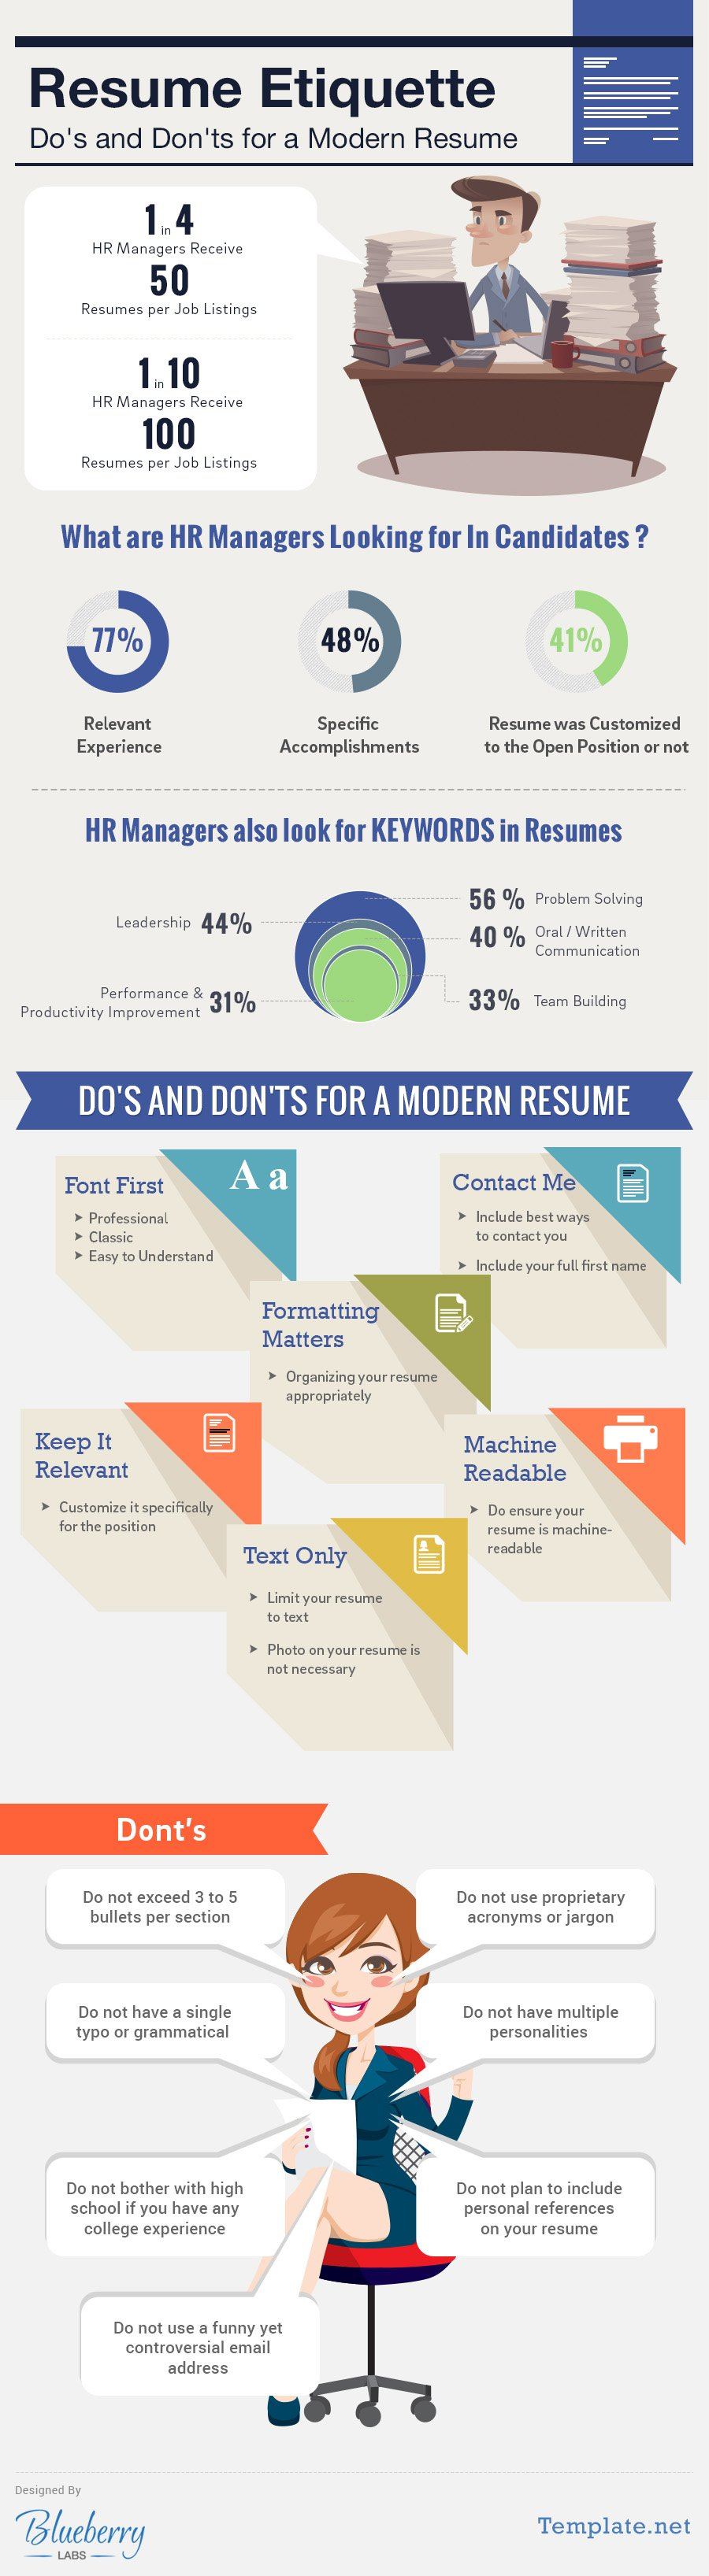 Resume Etiquette: Do\'s & Don\'ts for a Modern Resume - Job Search ...